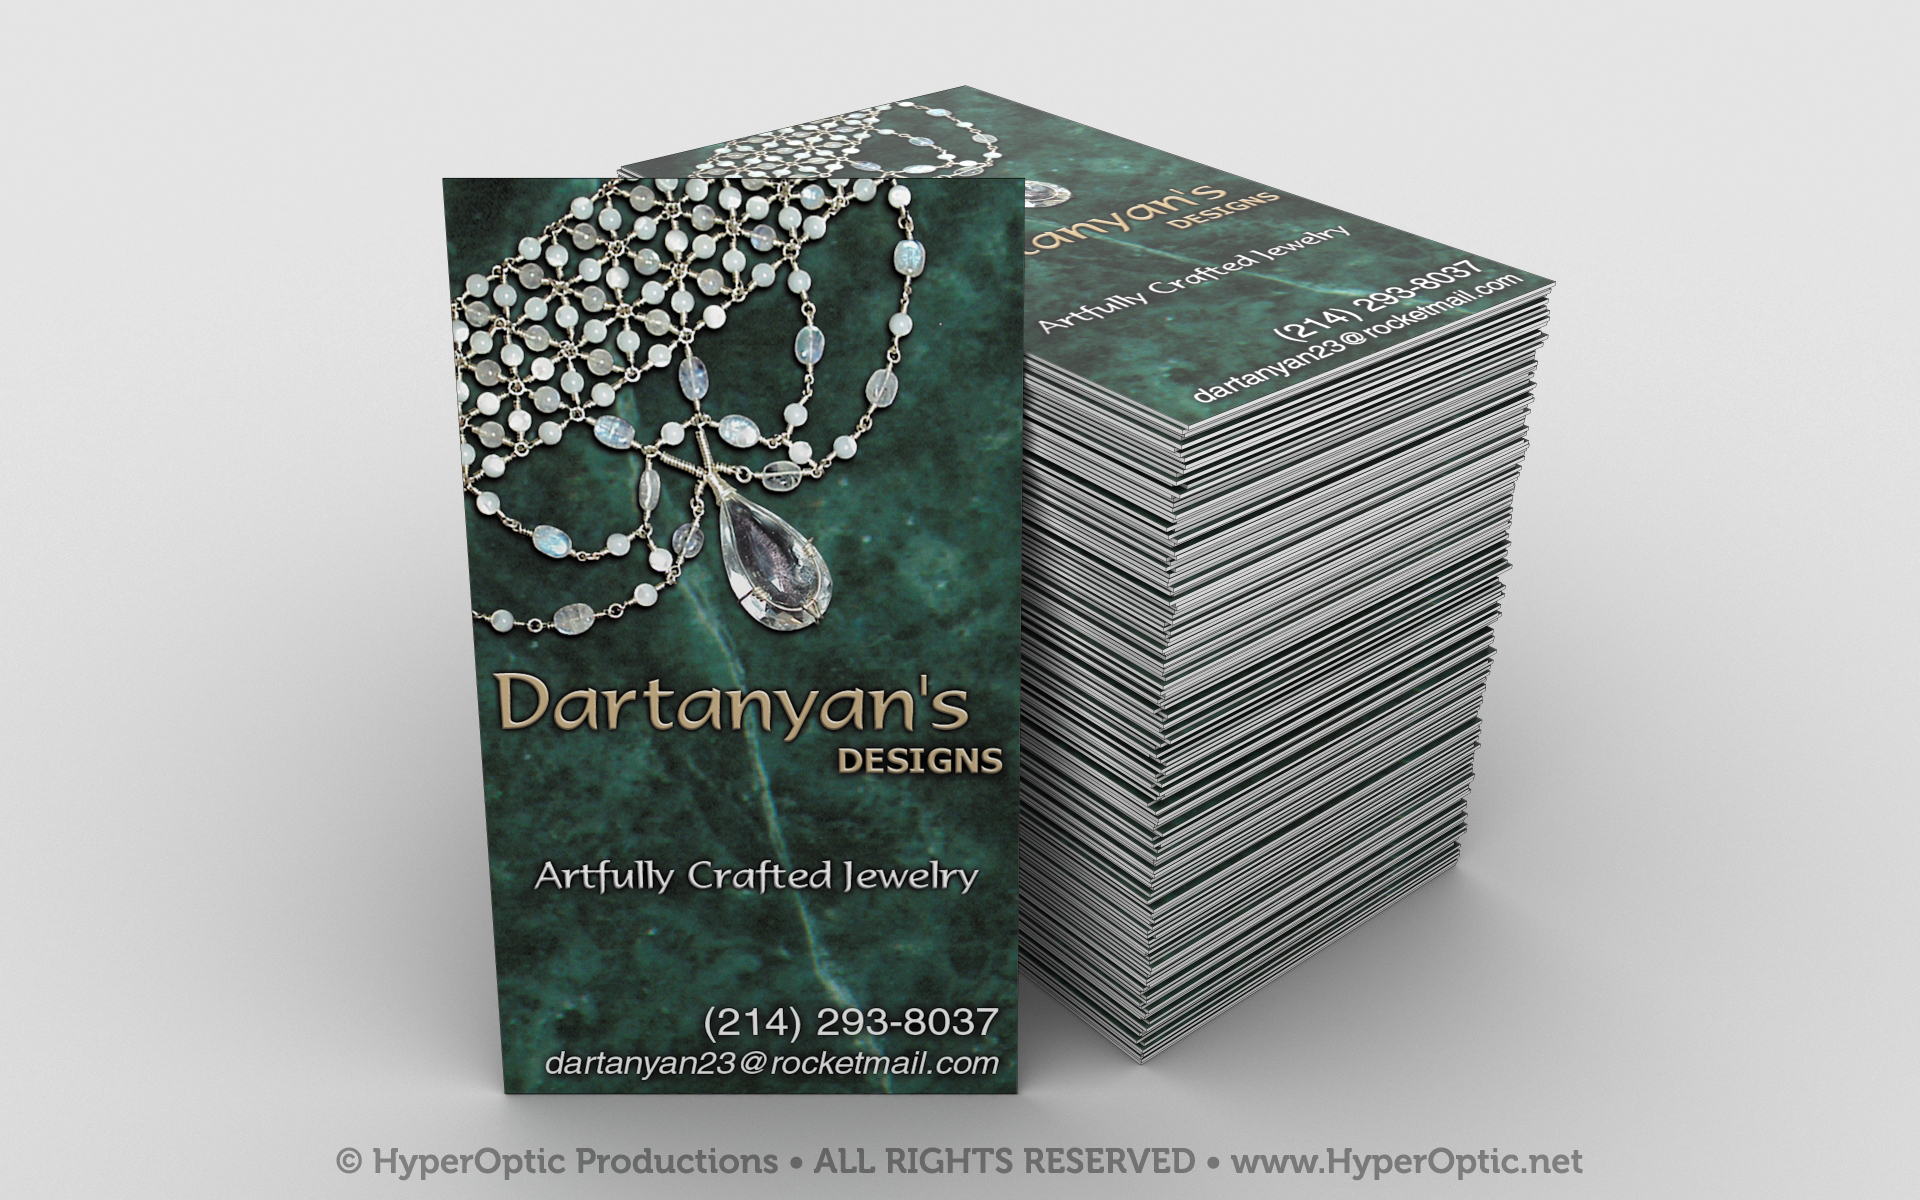 Business-Card-Sample-Visualization---Dartanyan's-Designs-watermarked